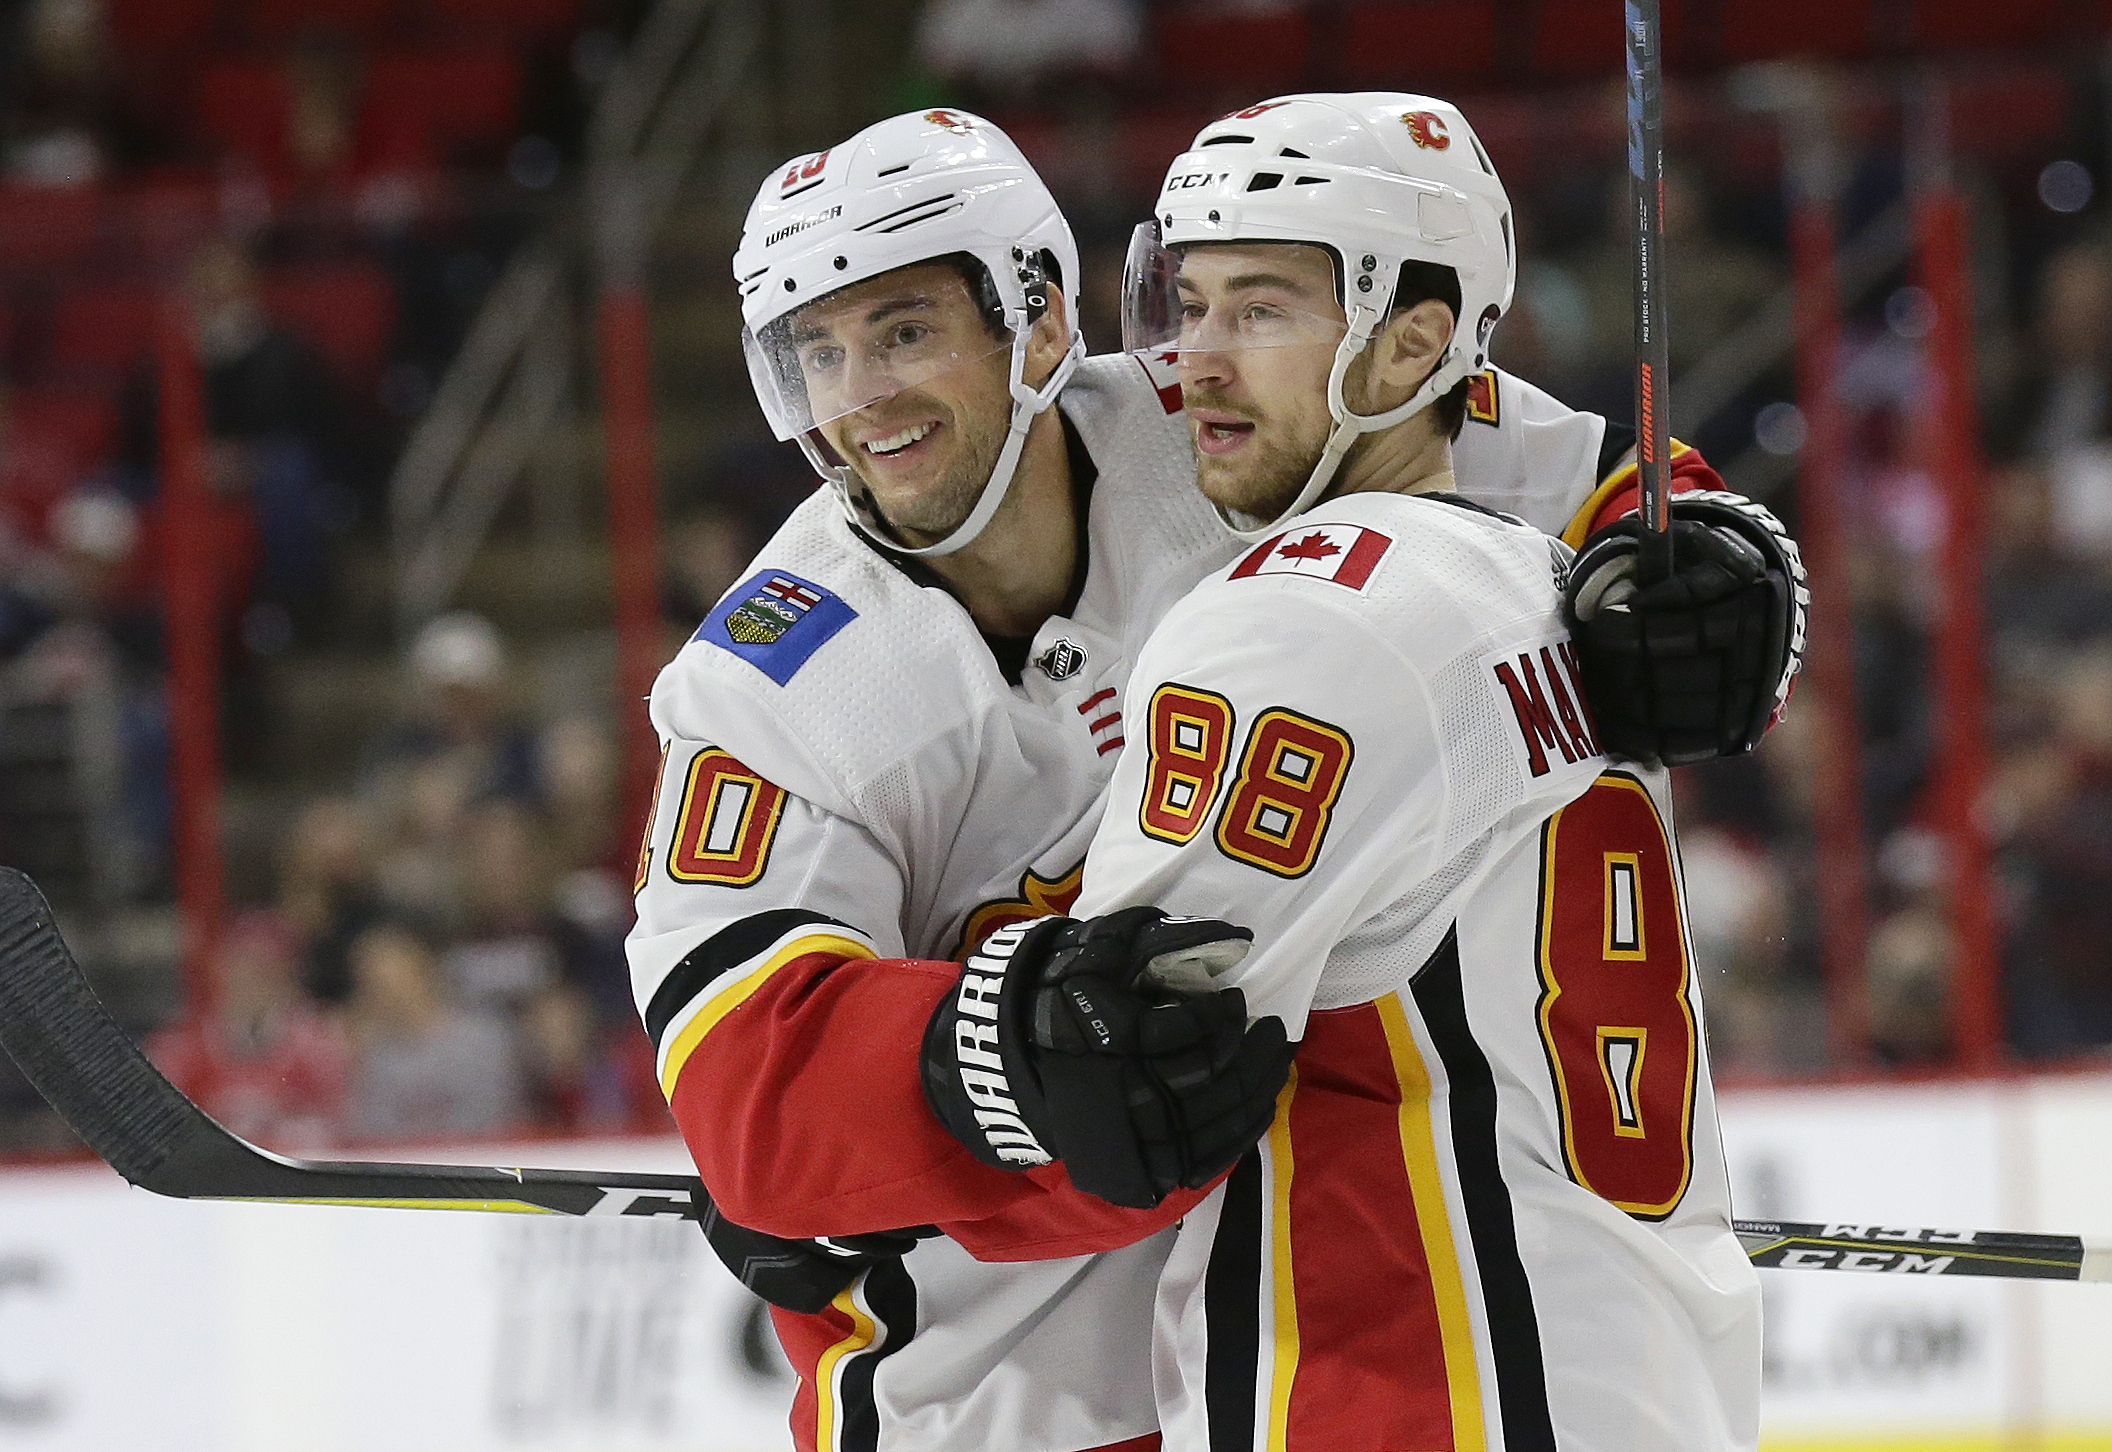 Ryan Lindhom Hanifin Lift Flames In Return To Raleigh Fox Sports